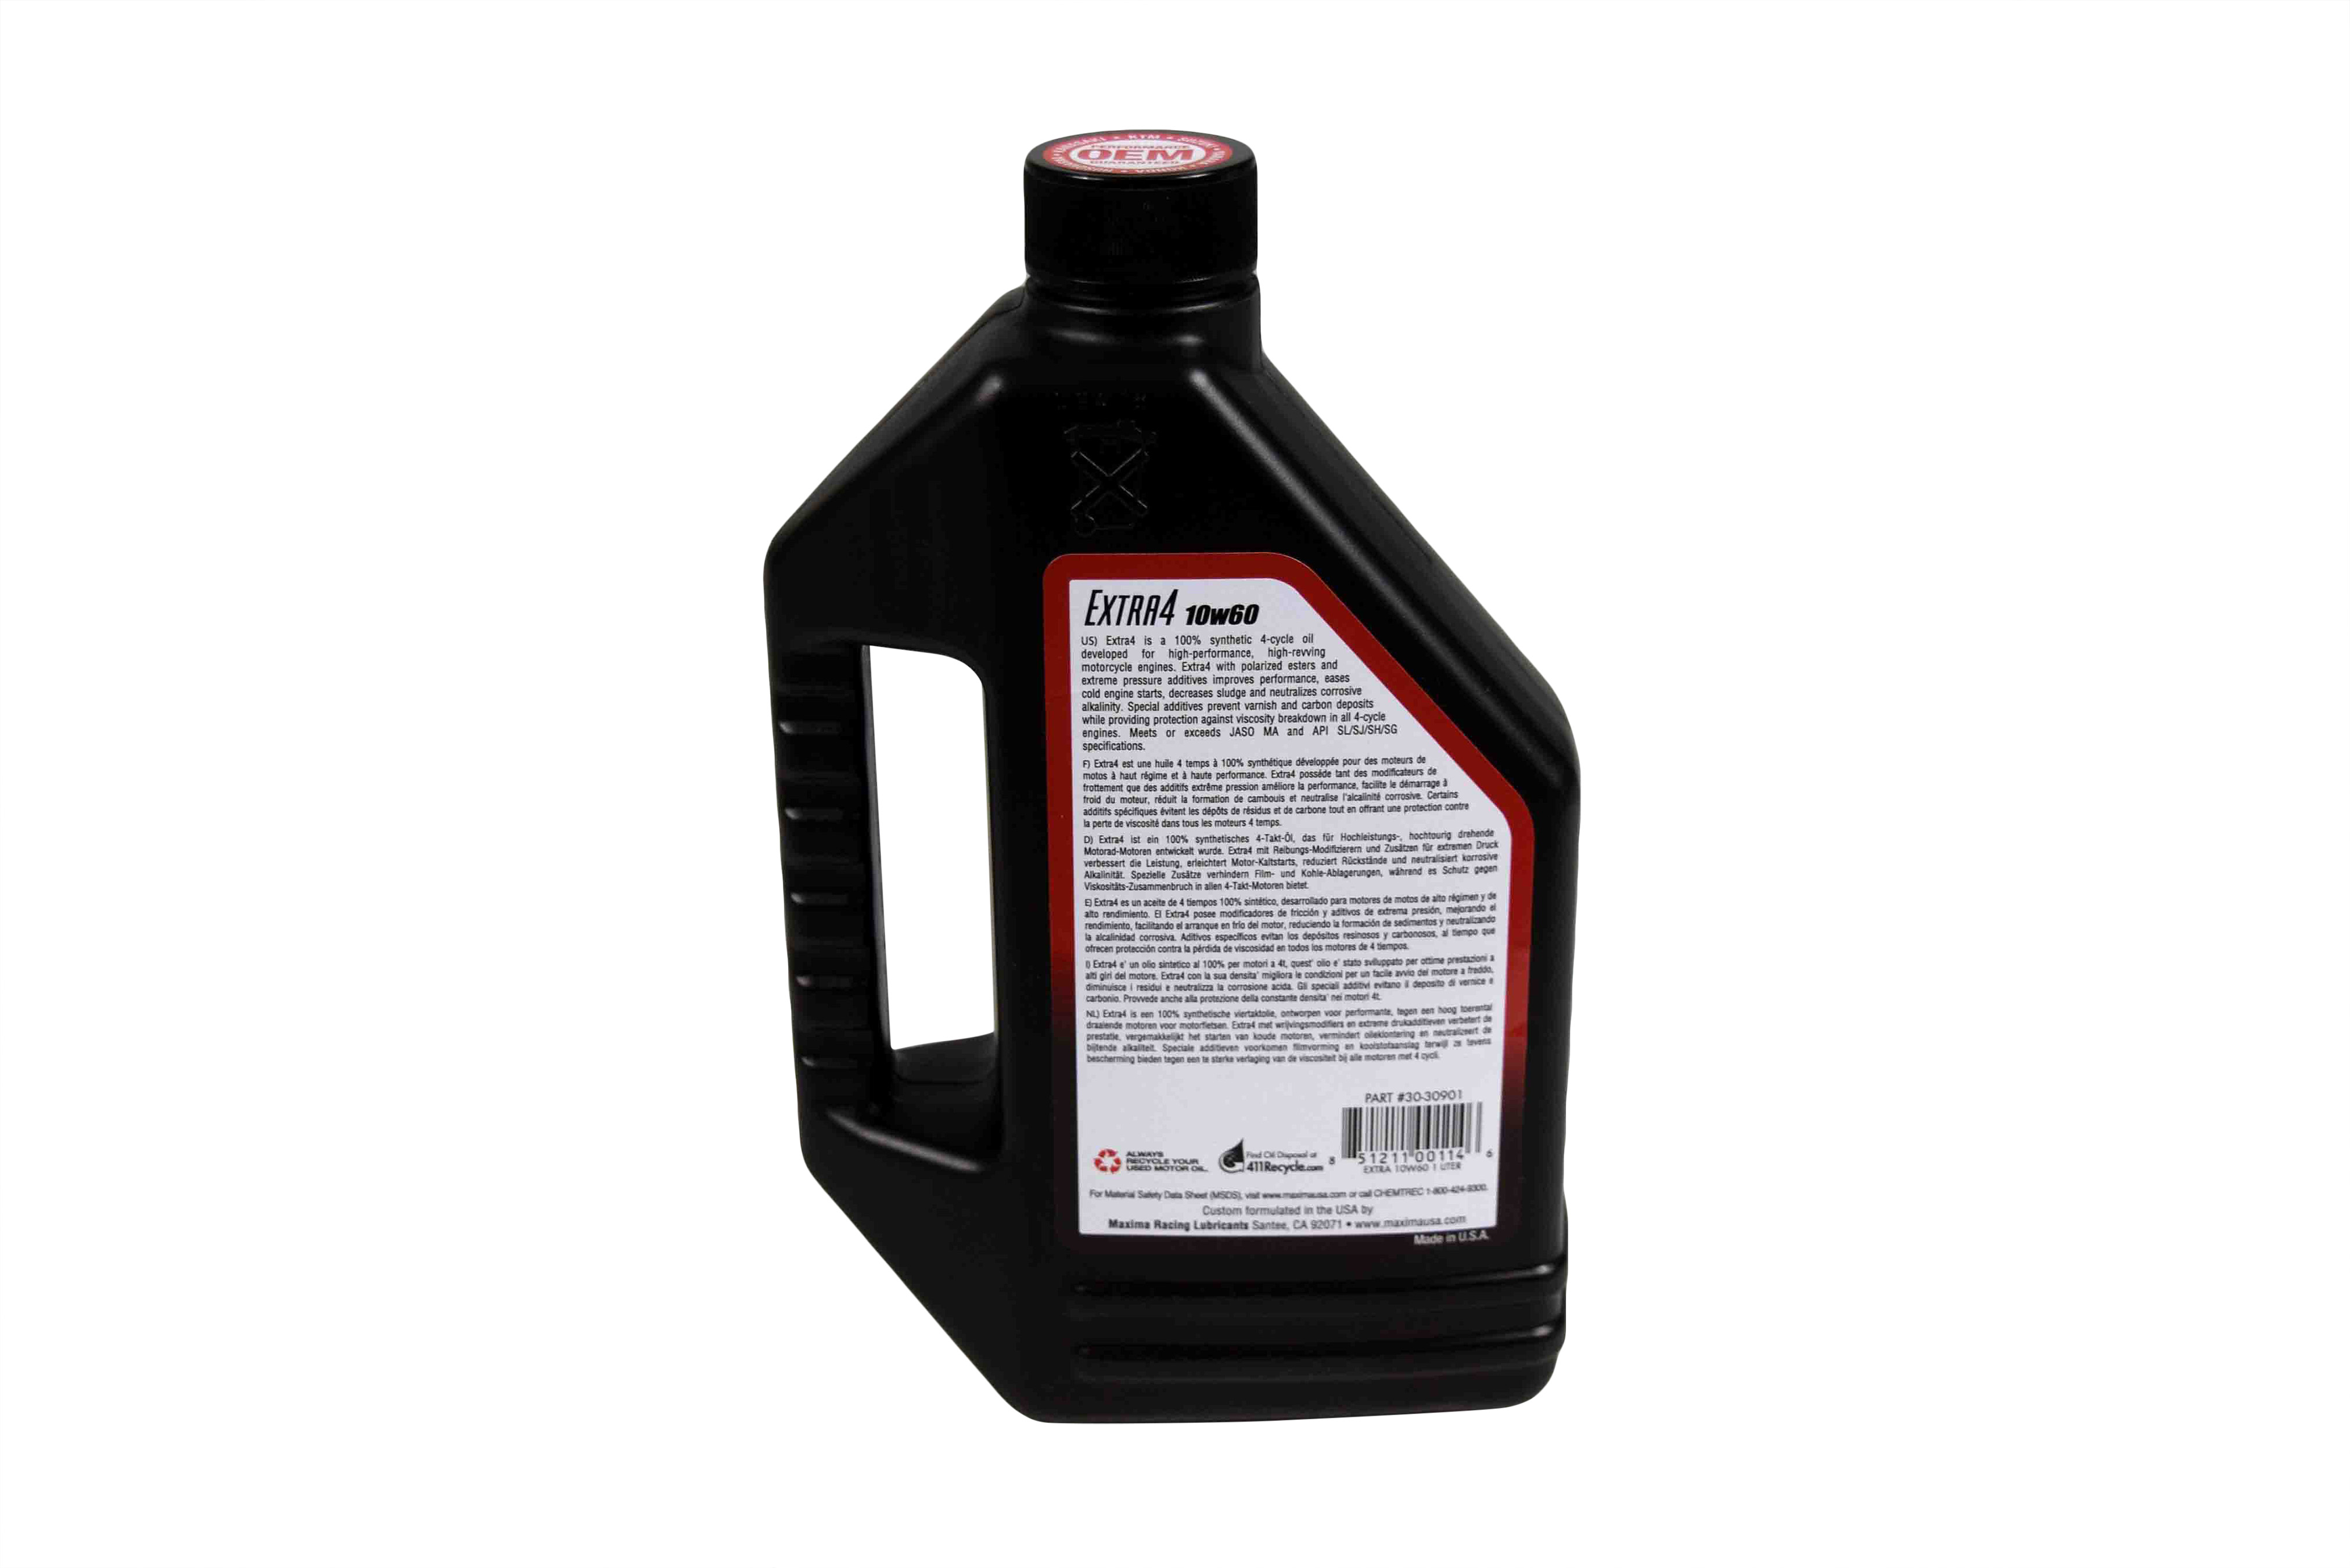 Maxima-30-30901-Extra4-10W-60-Synthetic-4T-Motorcycle-Engine-Oil-1-Liter-Bottle-image-3